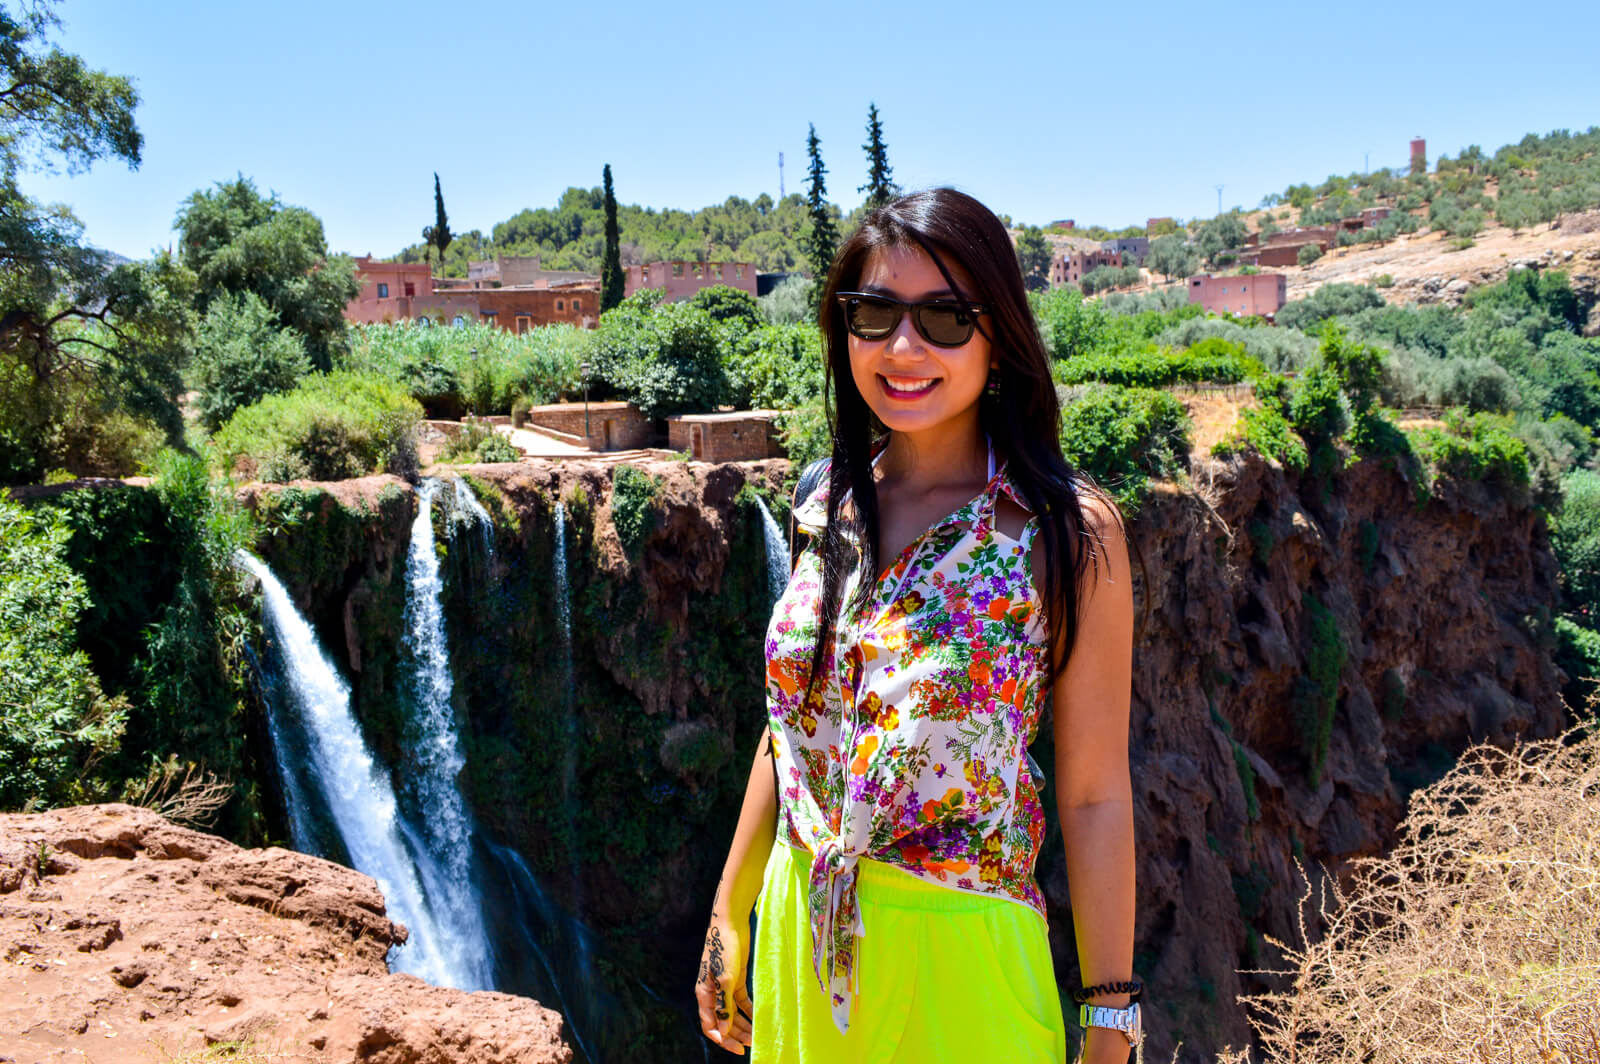 The natural beauty of the Ouzoud Waterfalls